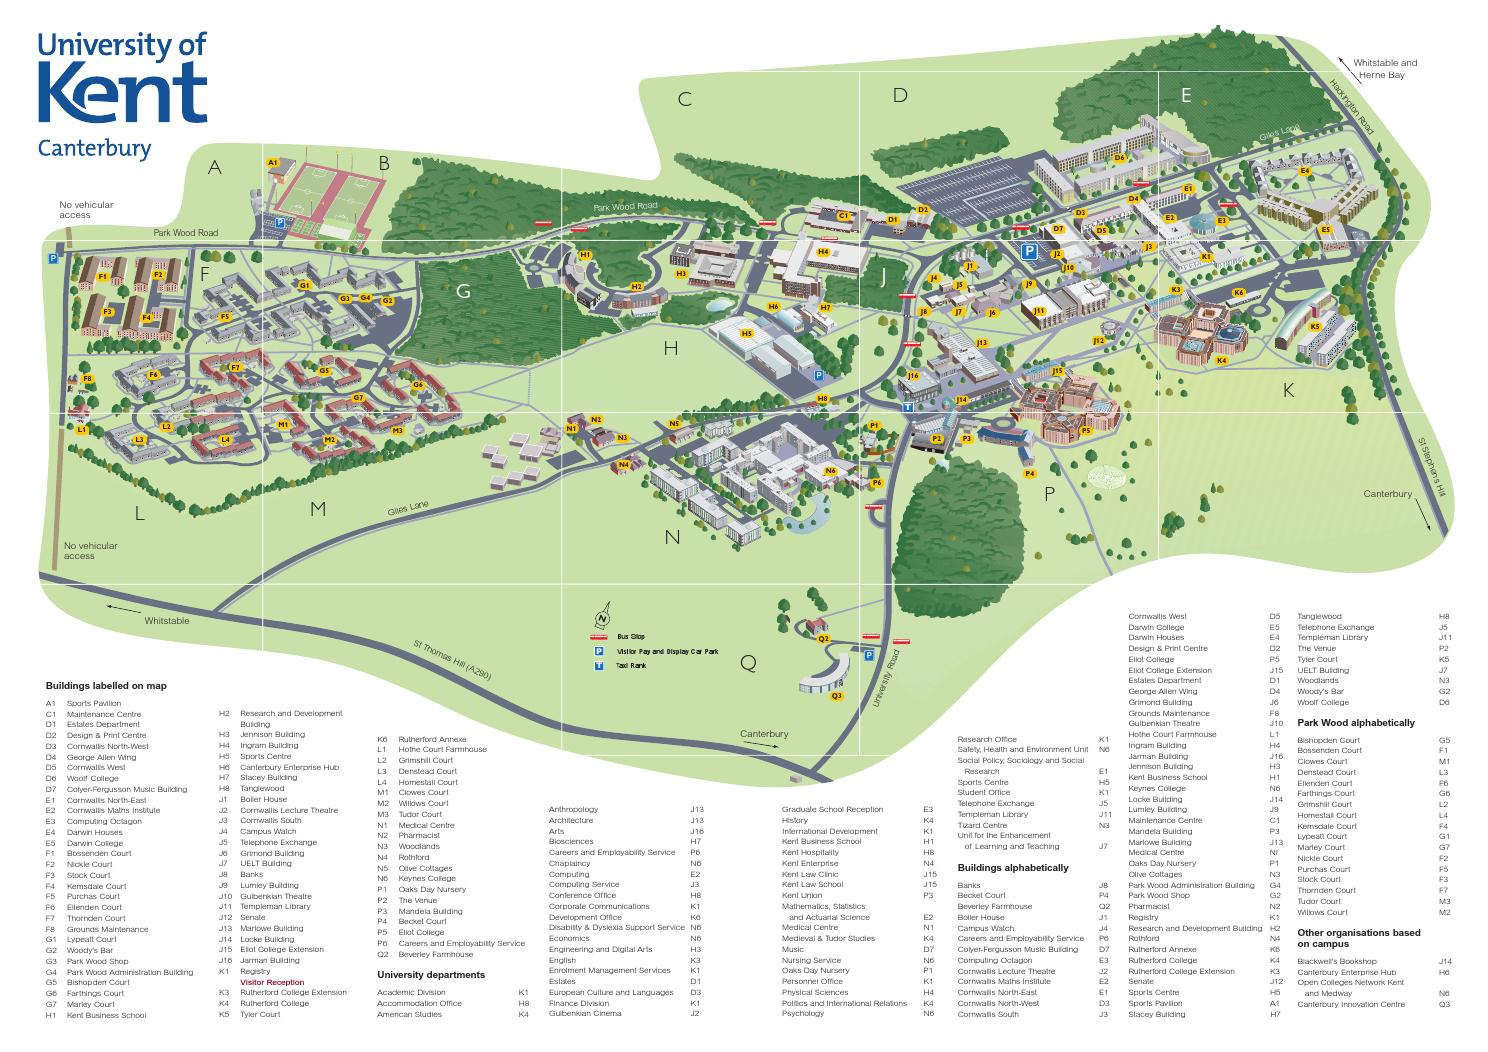 Parkland Campus Map.University Of Kent Canterbury Campus 3d Map Illustration 2013 By